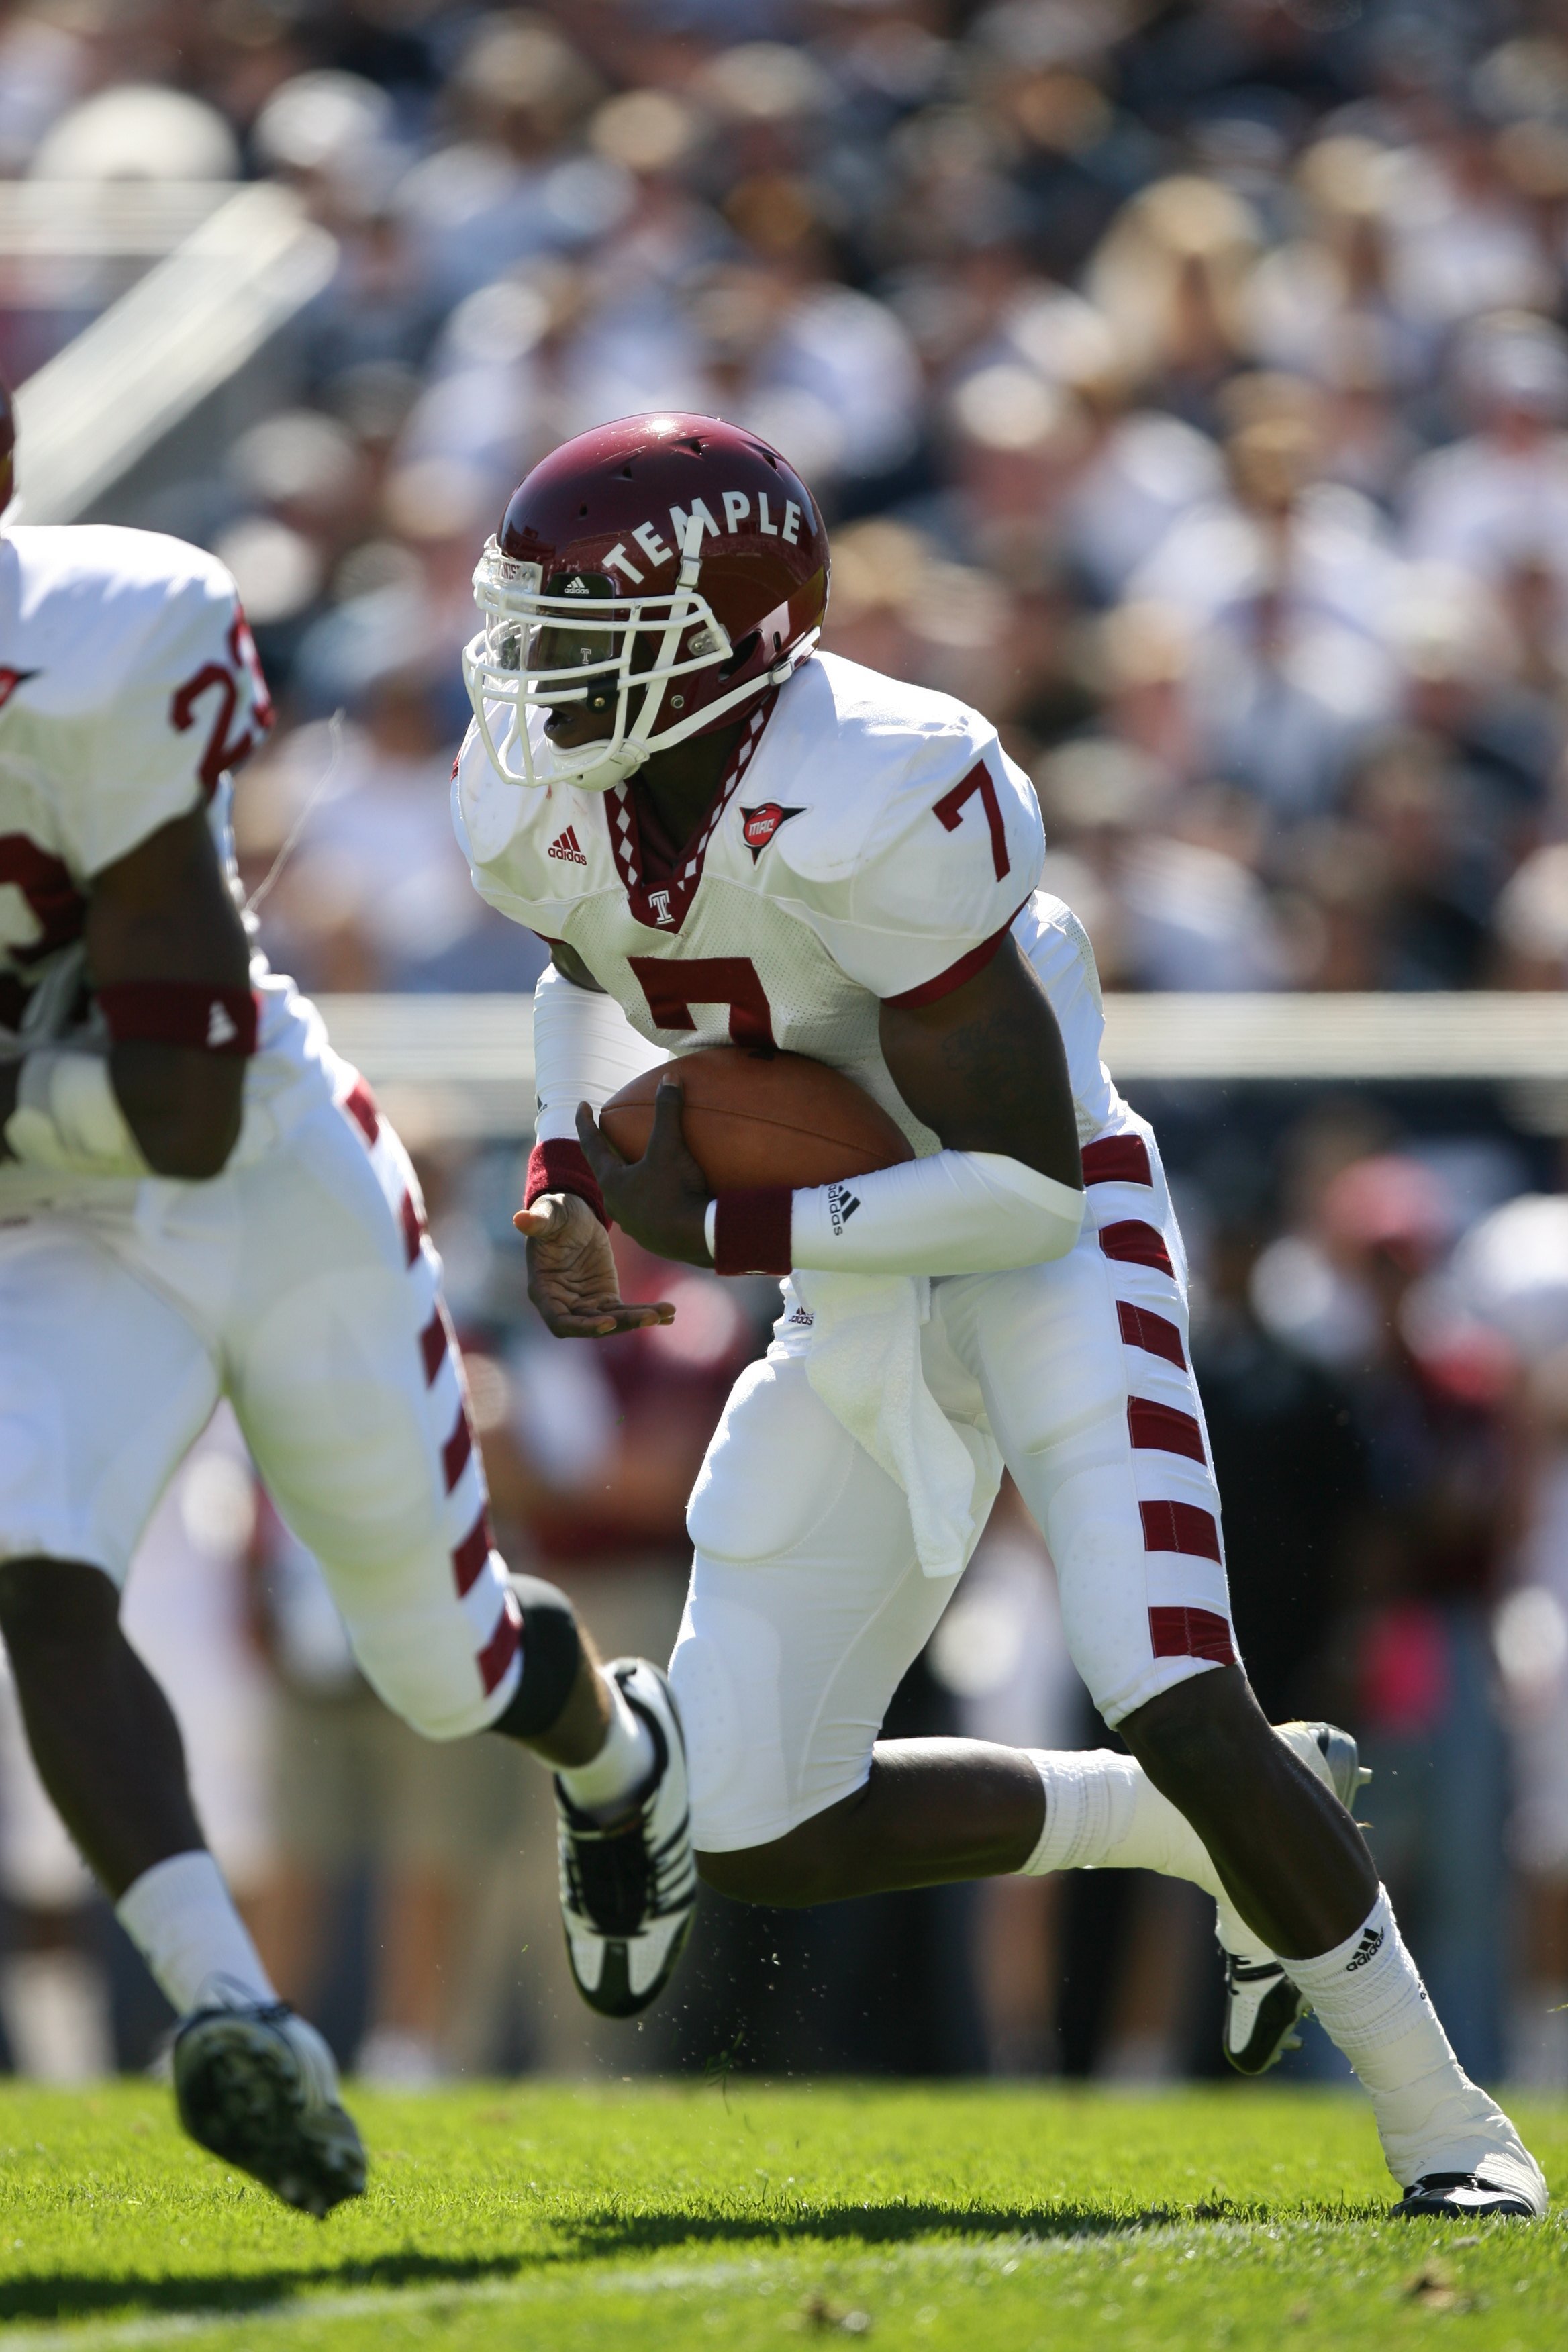 STATE COLLEGE, PA - SEPTEMBER 19: Quarterback Chester Stewart #7 of the Temple Owls runs with the ball during a game against the Penn State Nittany Lions on September 19, 2009 at Beaver Stadium in State College, Pennsylvania. (Photo by Hunter Martin/Getty